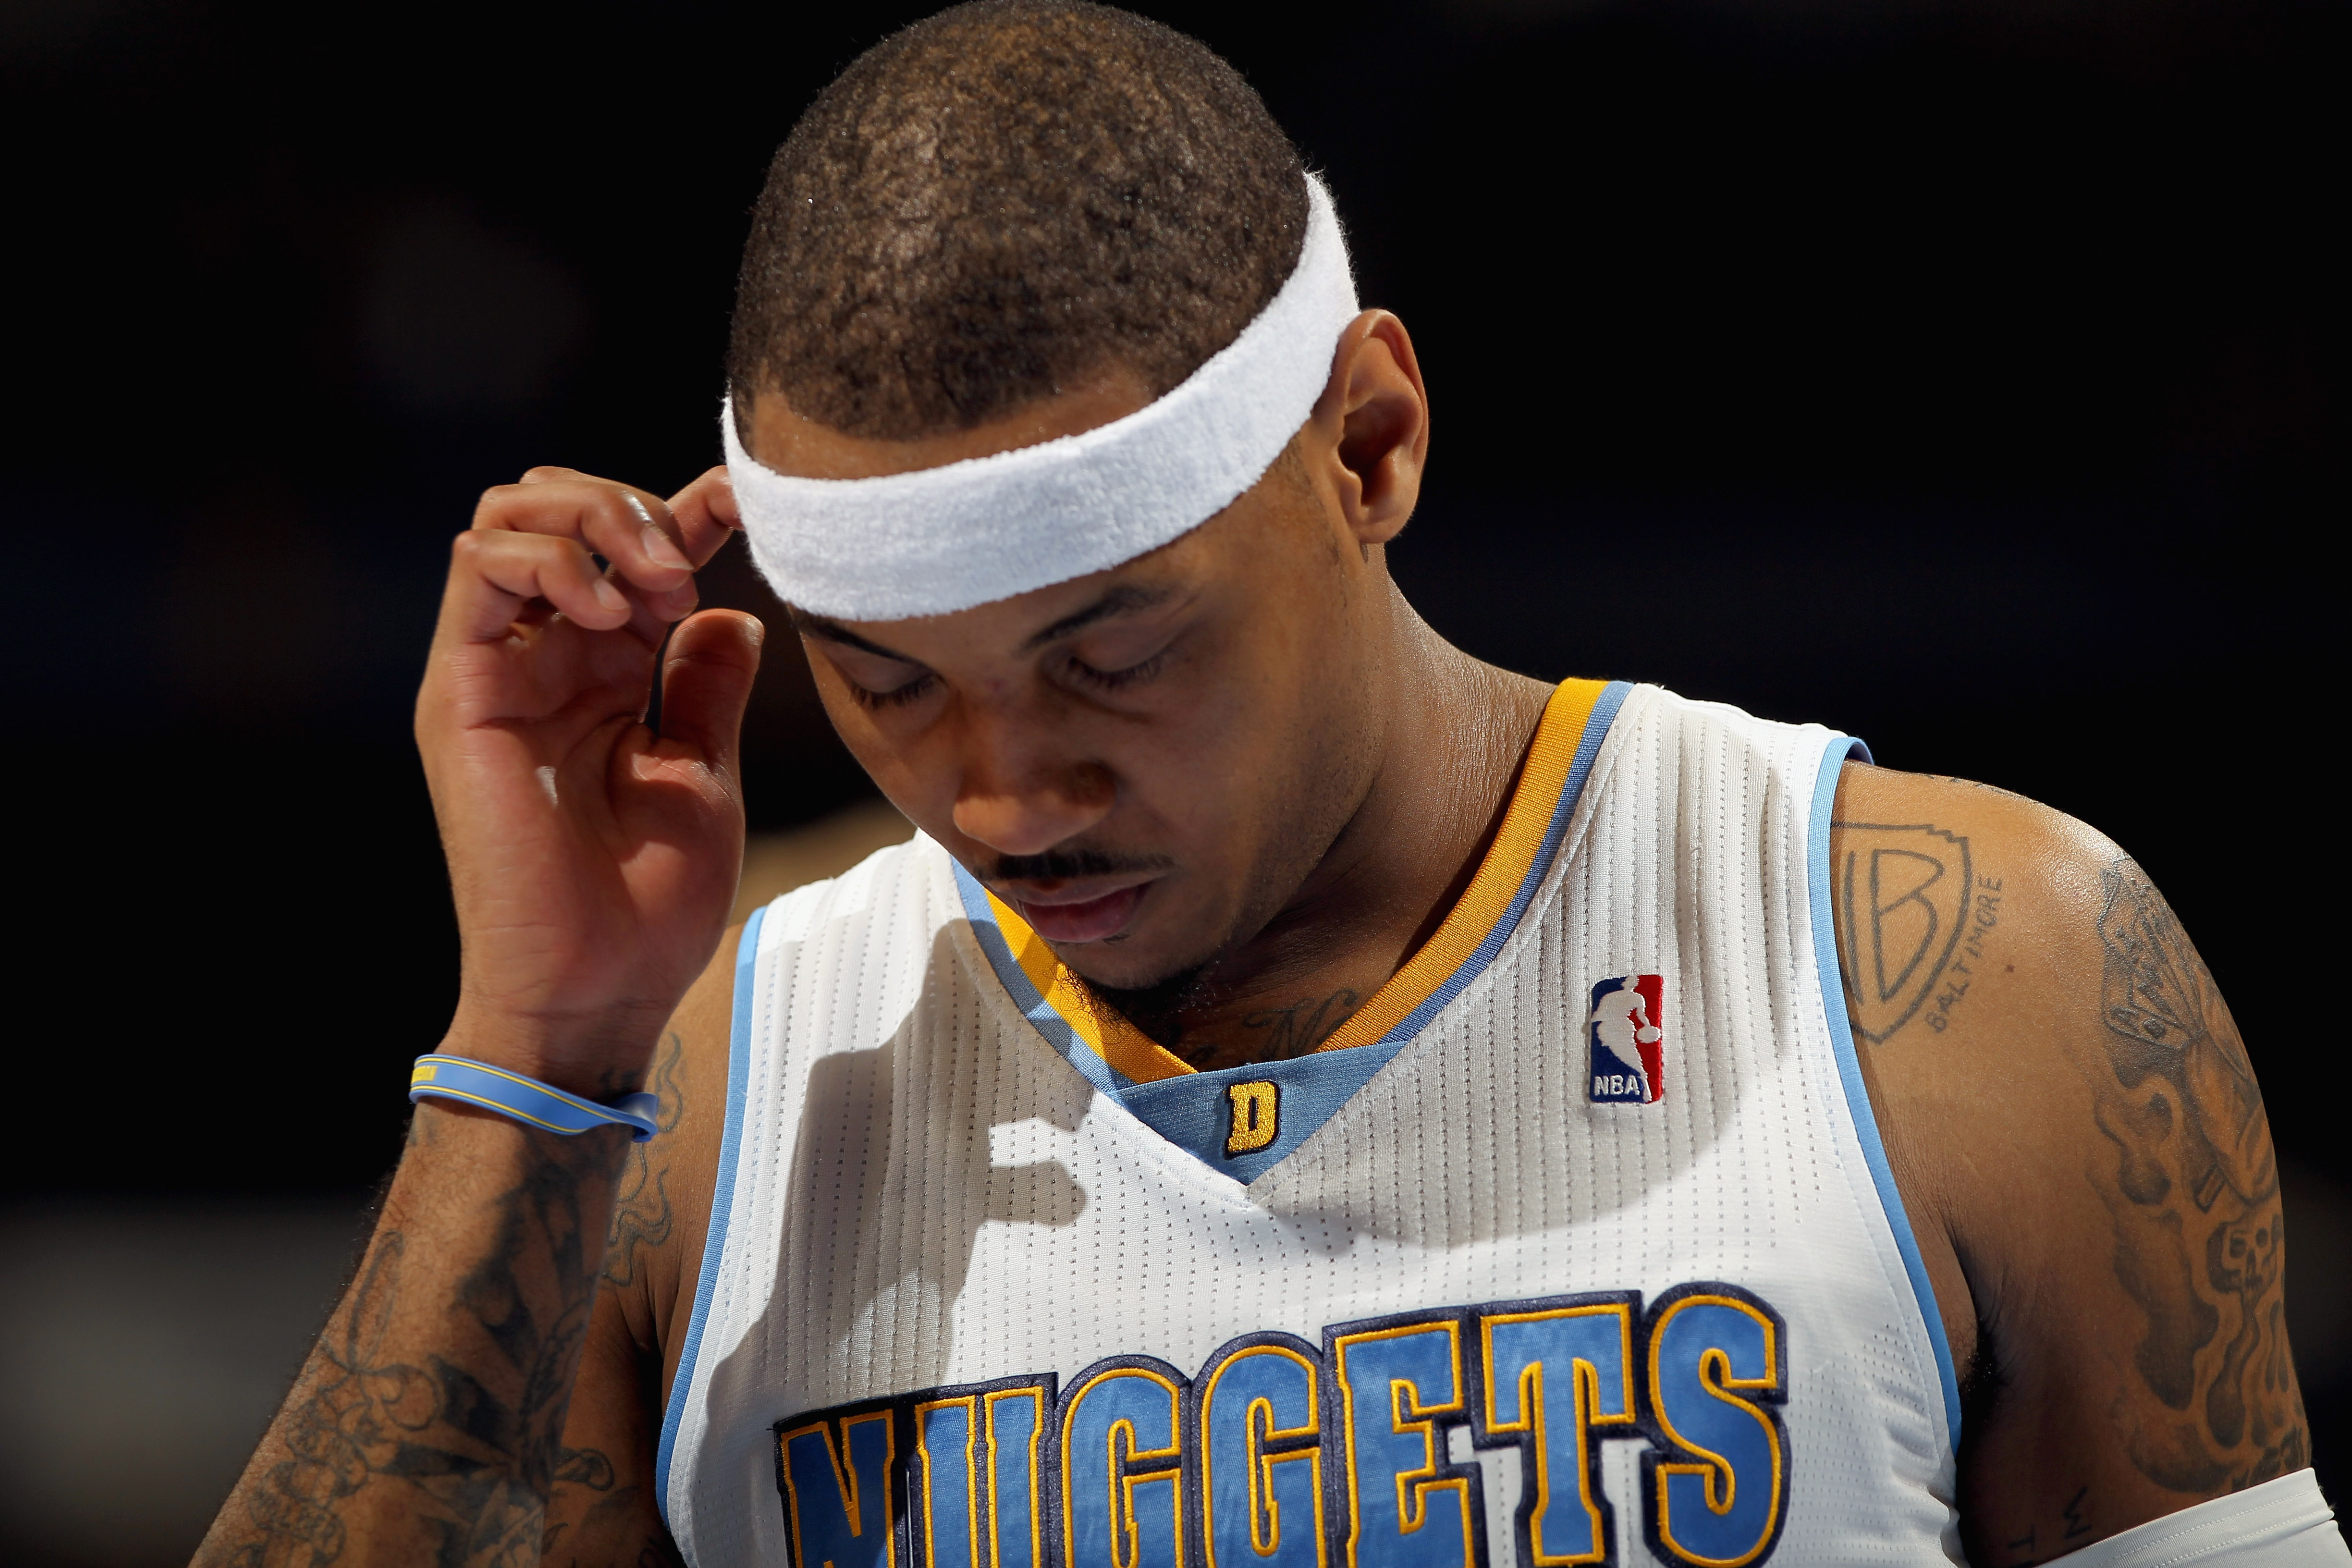 DENVER, CO - FEBRUARY 10:  Carmelo Anthony #15 of the Denver Nuggets looks on during a break in the action against the Dallas Mavericks during NBA action at the Pepsi Center on February 10, 2011 in Denver, Colorado. The Nuggets defeated the Mavericks 121-